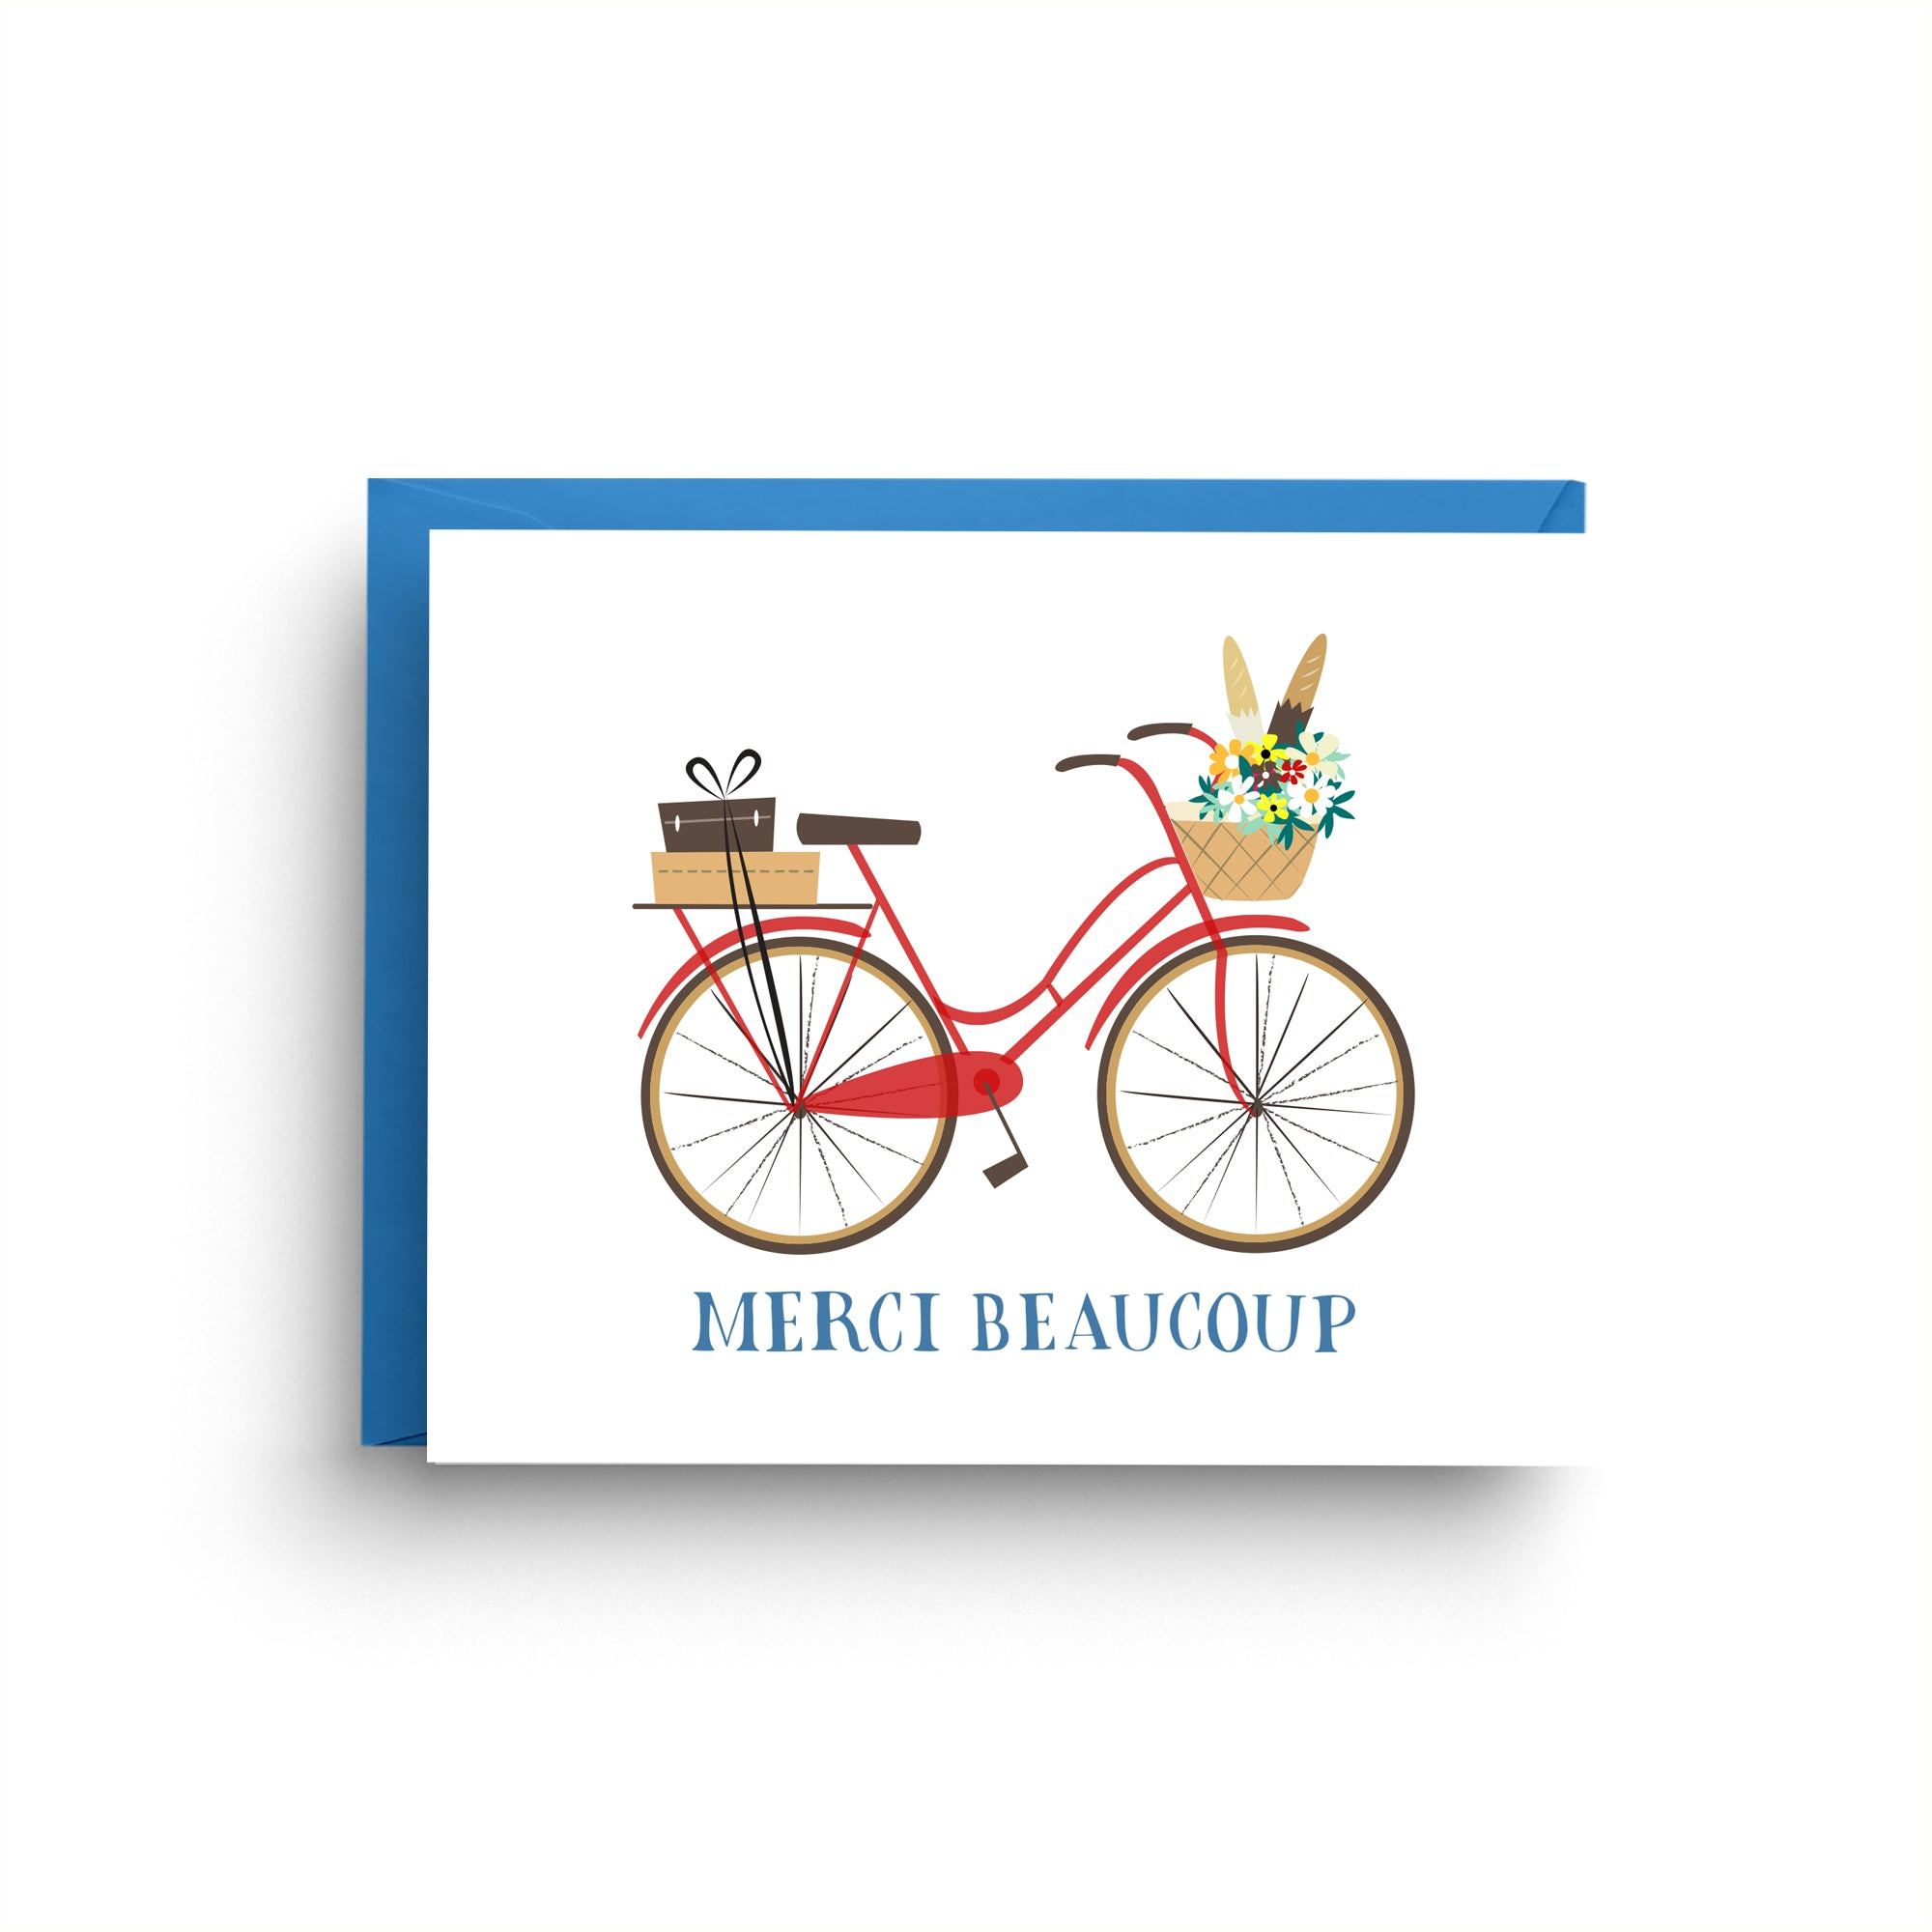 thank you card, wedding thank you, cute thank you, thank you card set, vintage bike, blue bicycle, red bicycle, bicycle thank you, retro bicycle, merci beaucoup, merci card, french card, boxed set